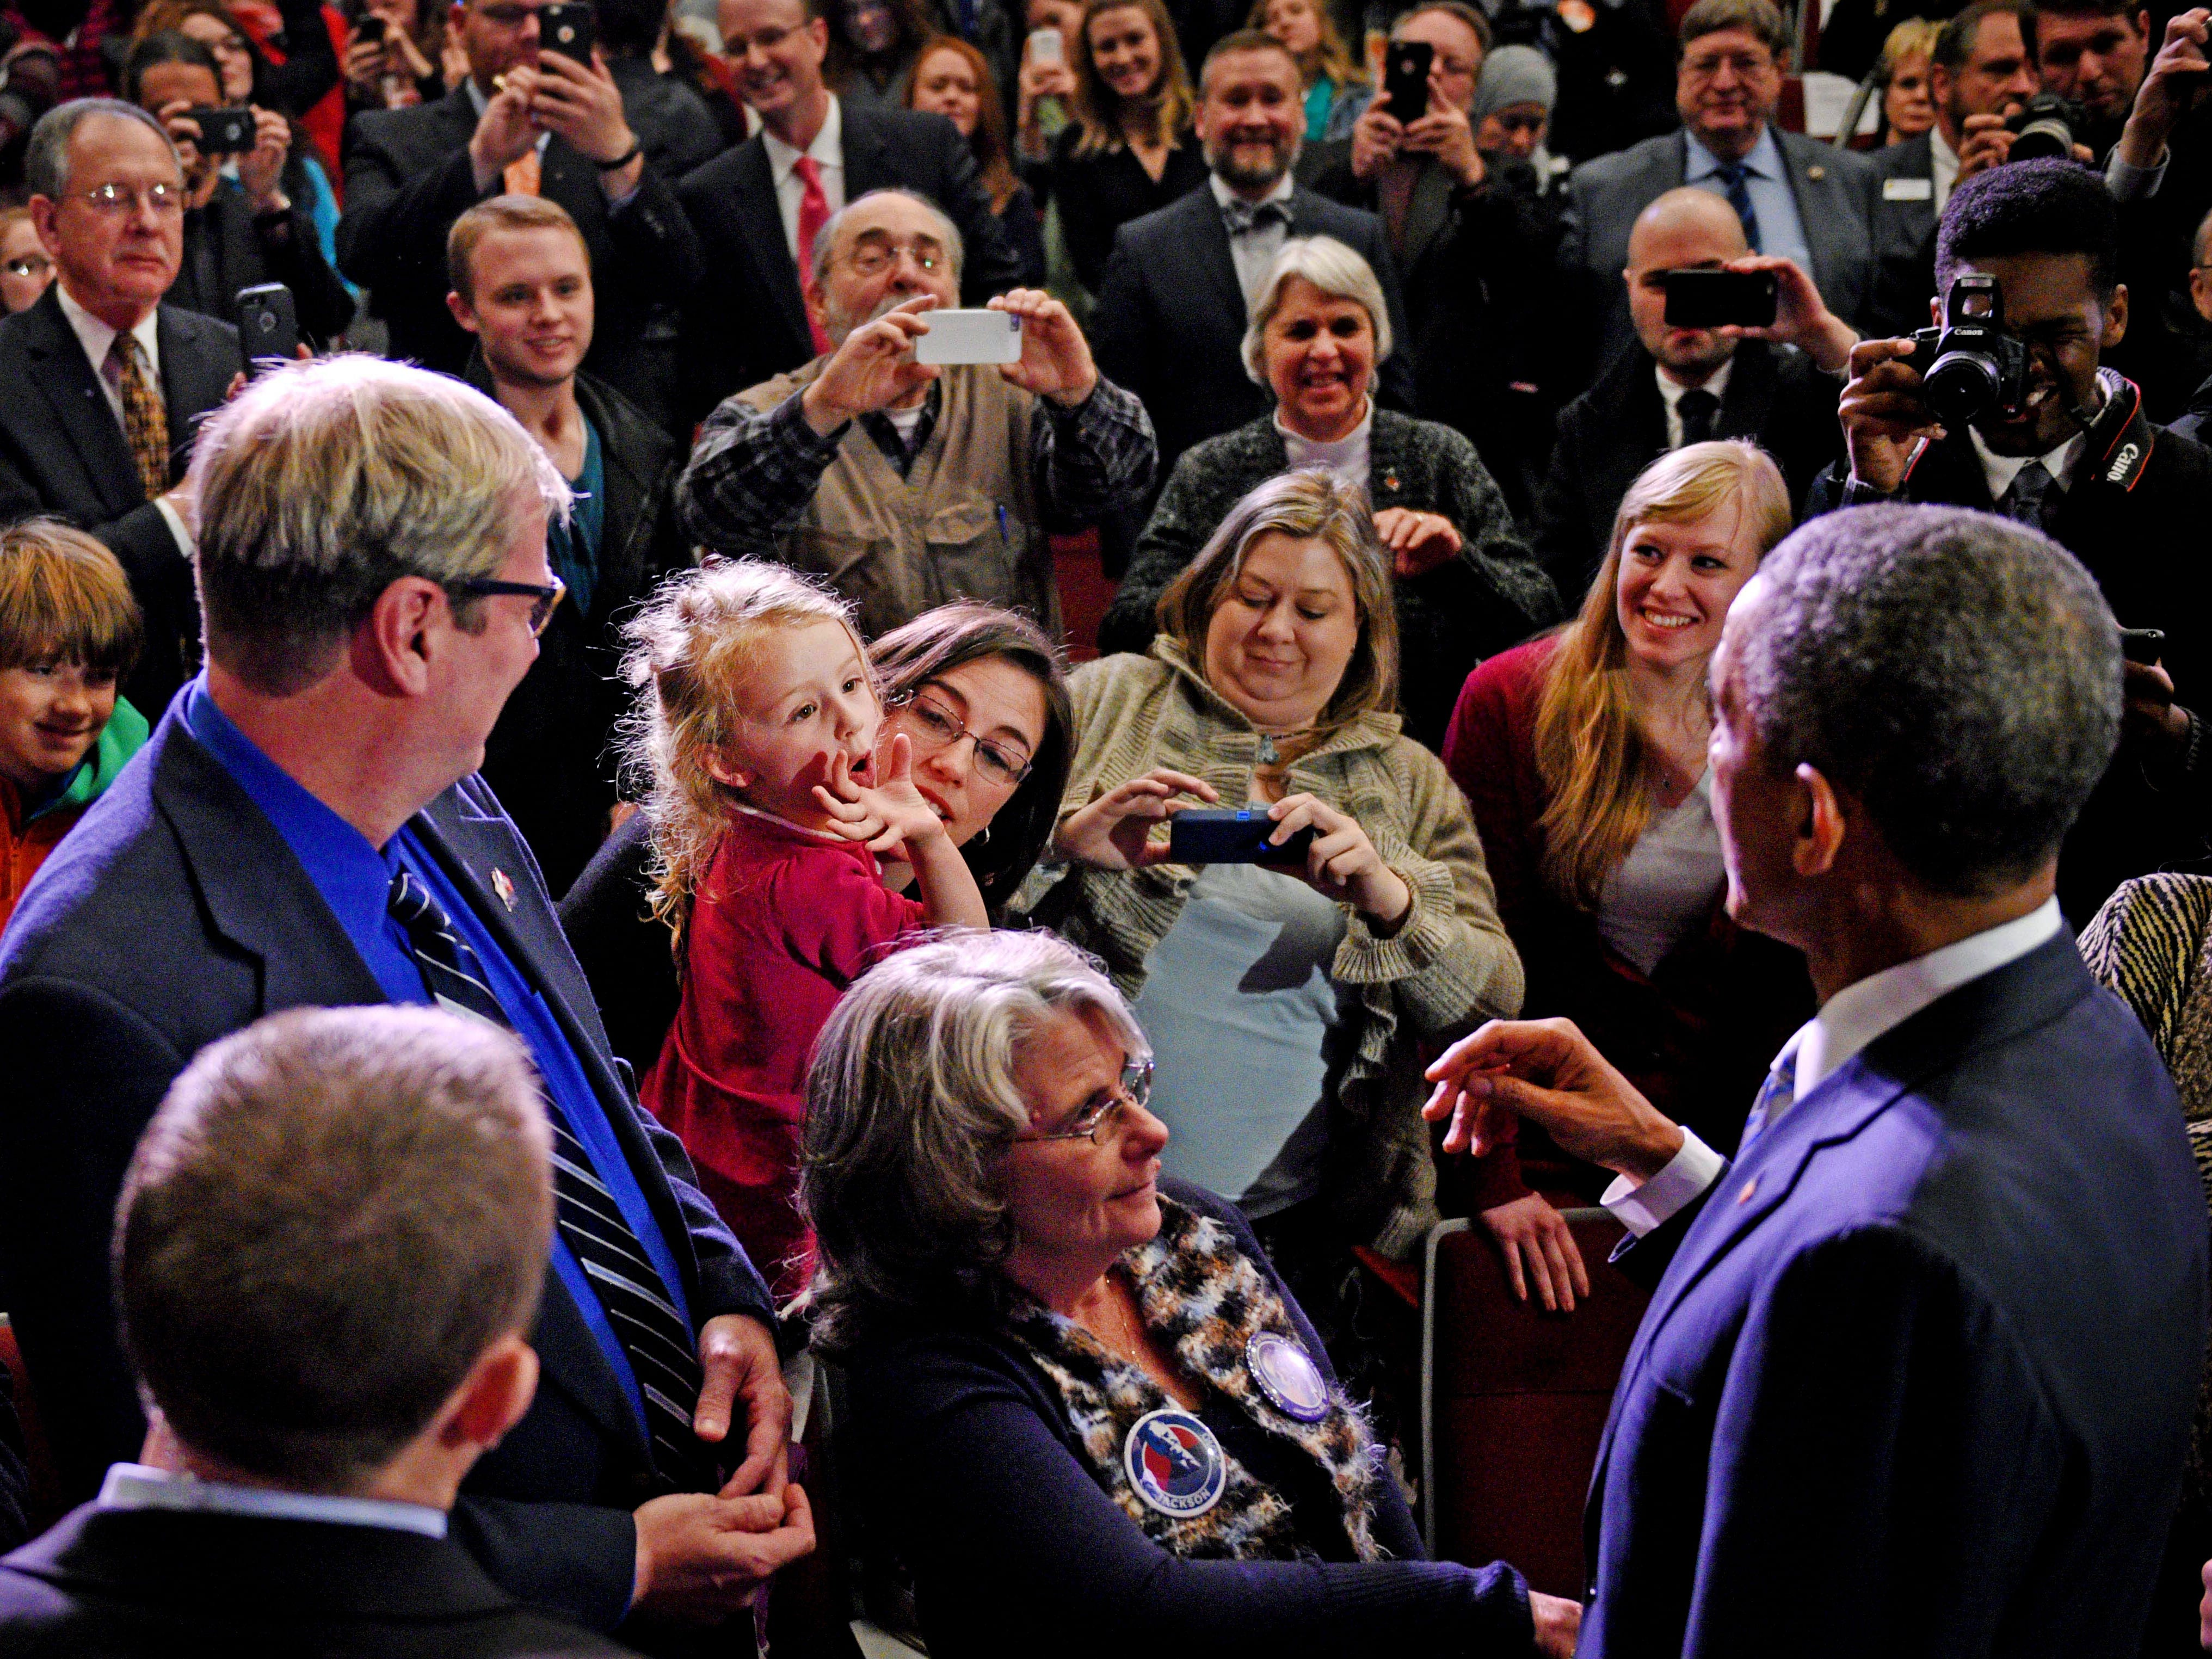 Kathryn Durr gets the attention of President Barack Obama after he finished speaking at Pellissippi State Community College Friday, Jan. 9, 2015.